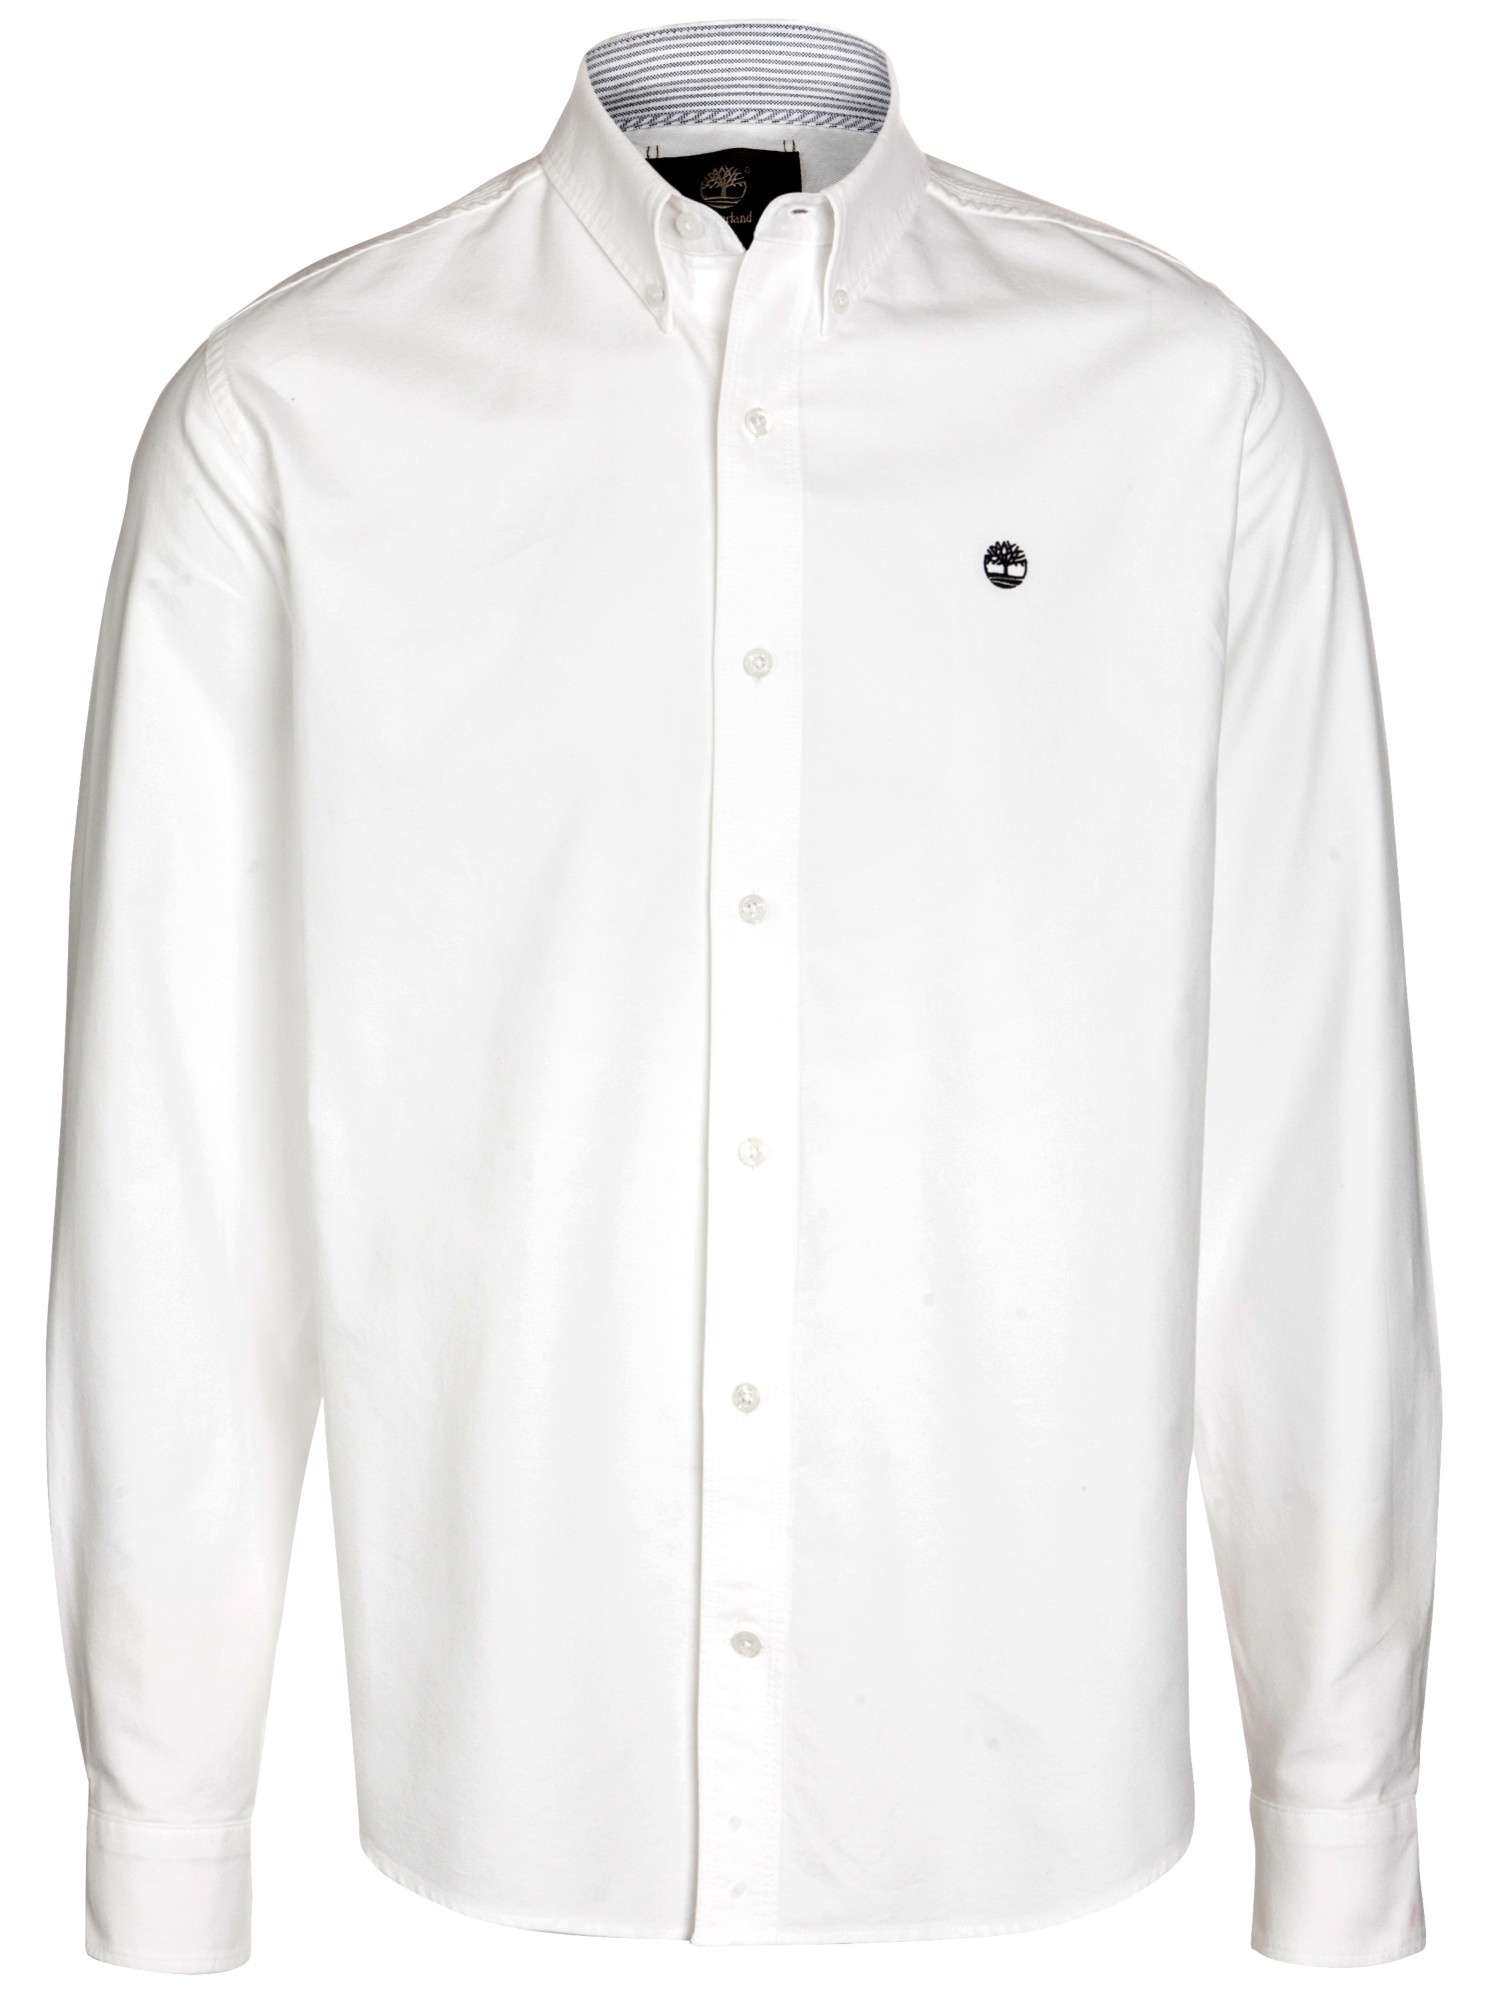 Timberland Long Sleeve Oxford Shirt in White for Men